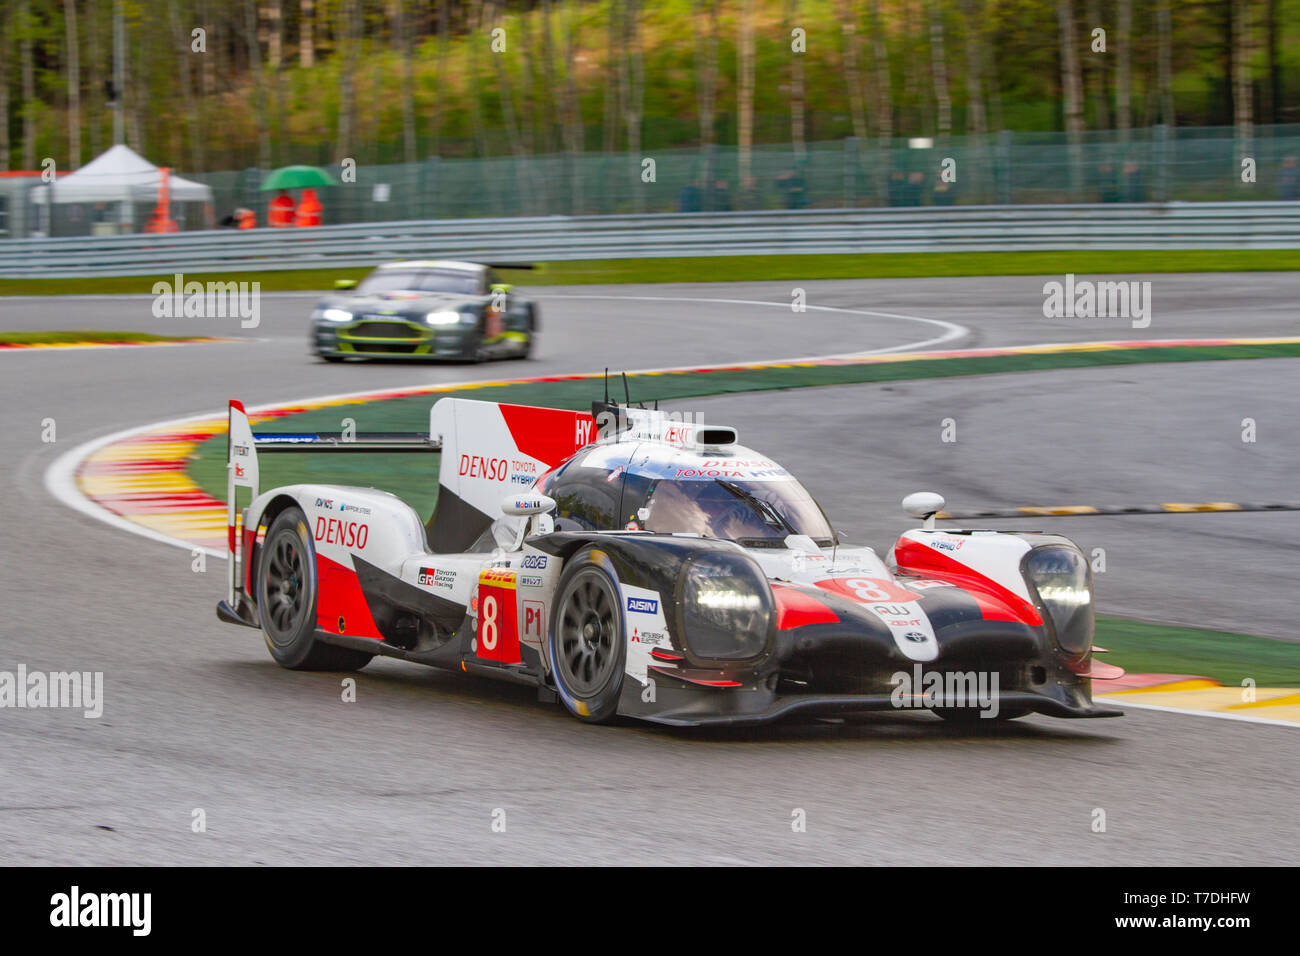 Toyota LMP1 Hybrid leads through the Les Combes chicane. WEC Total 6 Hours of Spa-Francorchamps 2019. This car was the overall winner. Stock Photo